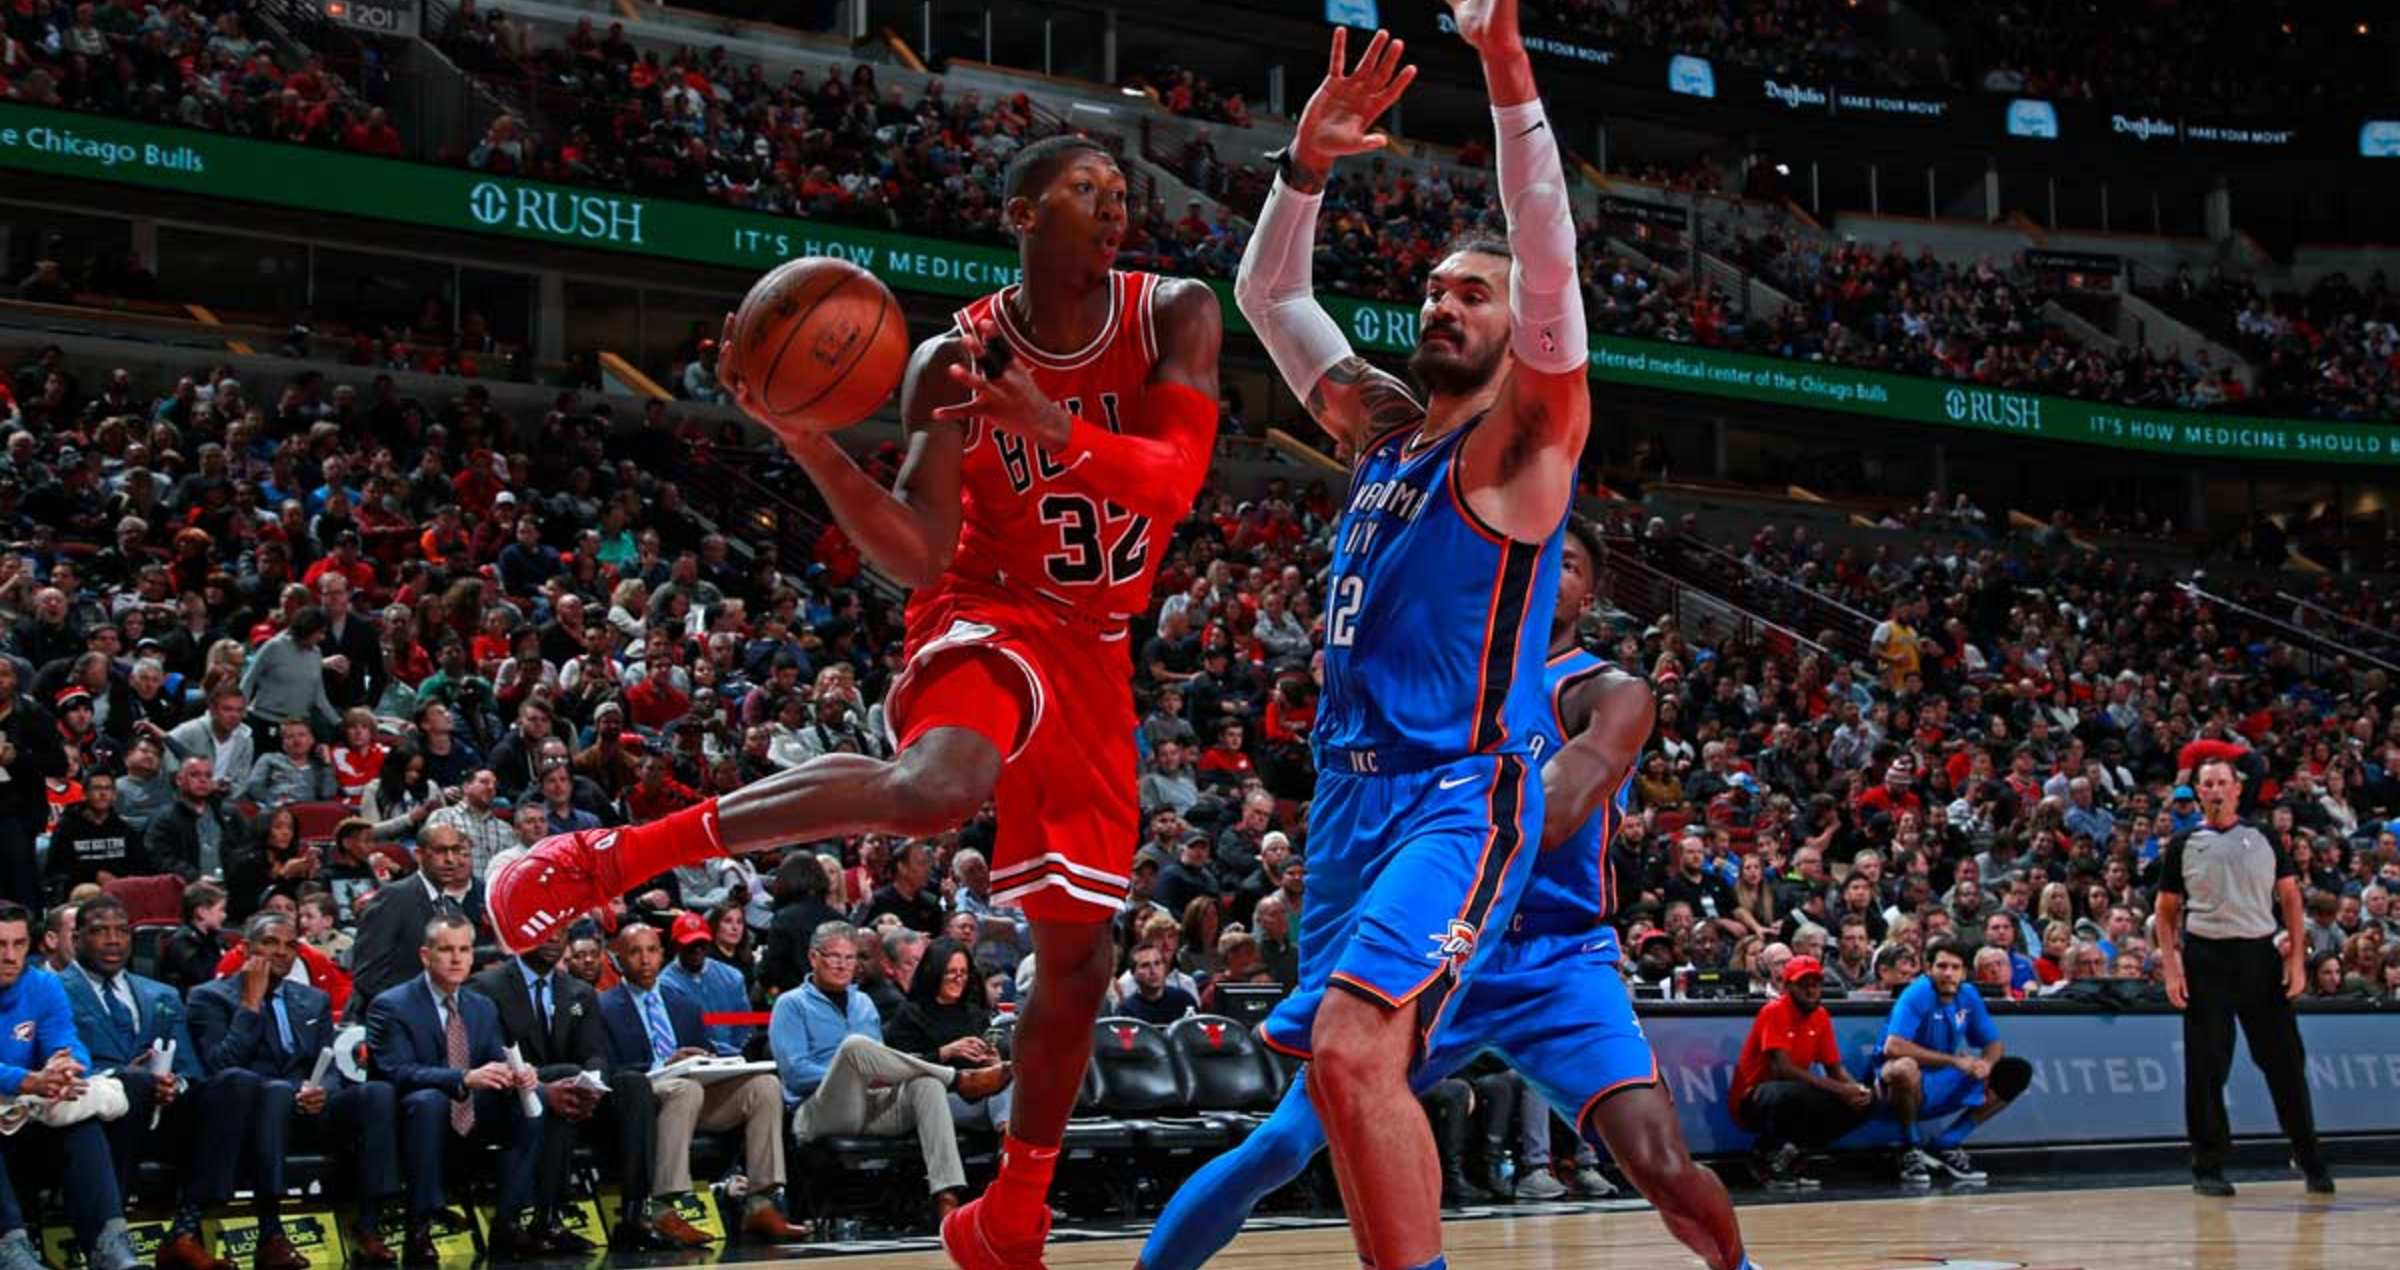 Kris Dunn #32 of the Chicago Bulls passes the ball against the Oklahoma City Thunder on October 28, 2017 at the United Center in Chicago, Illinois.